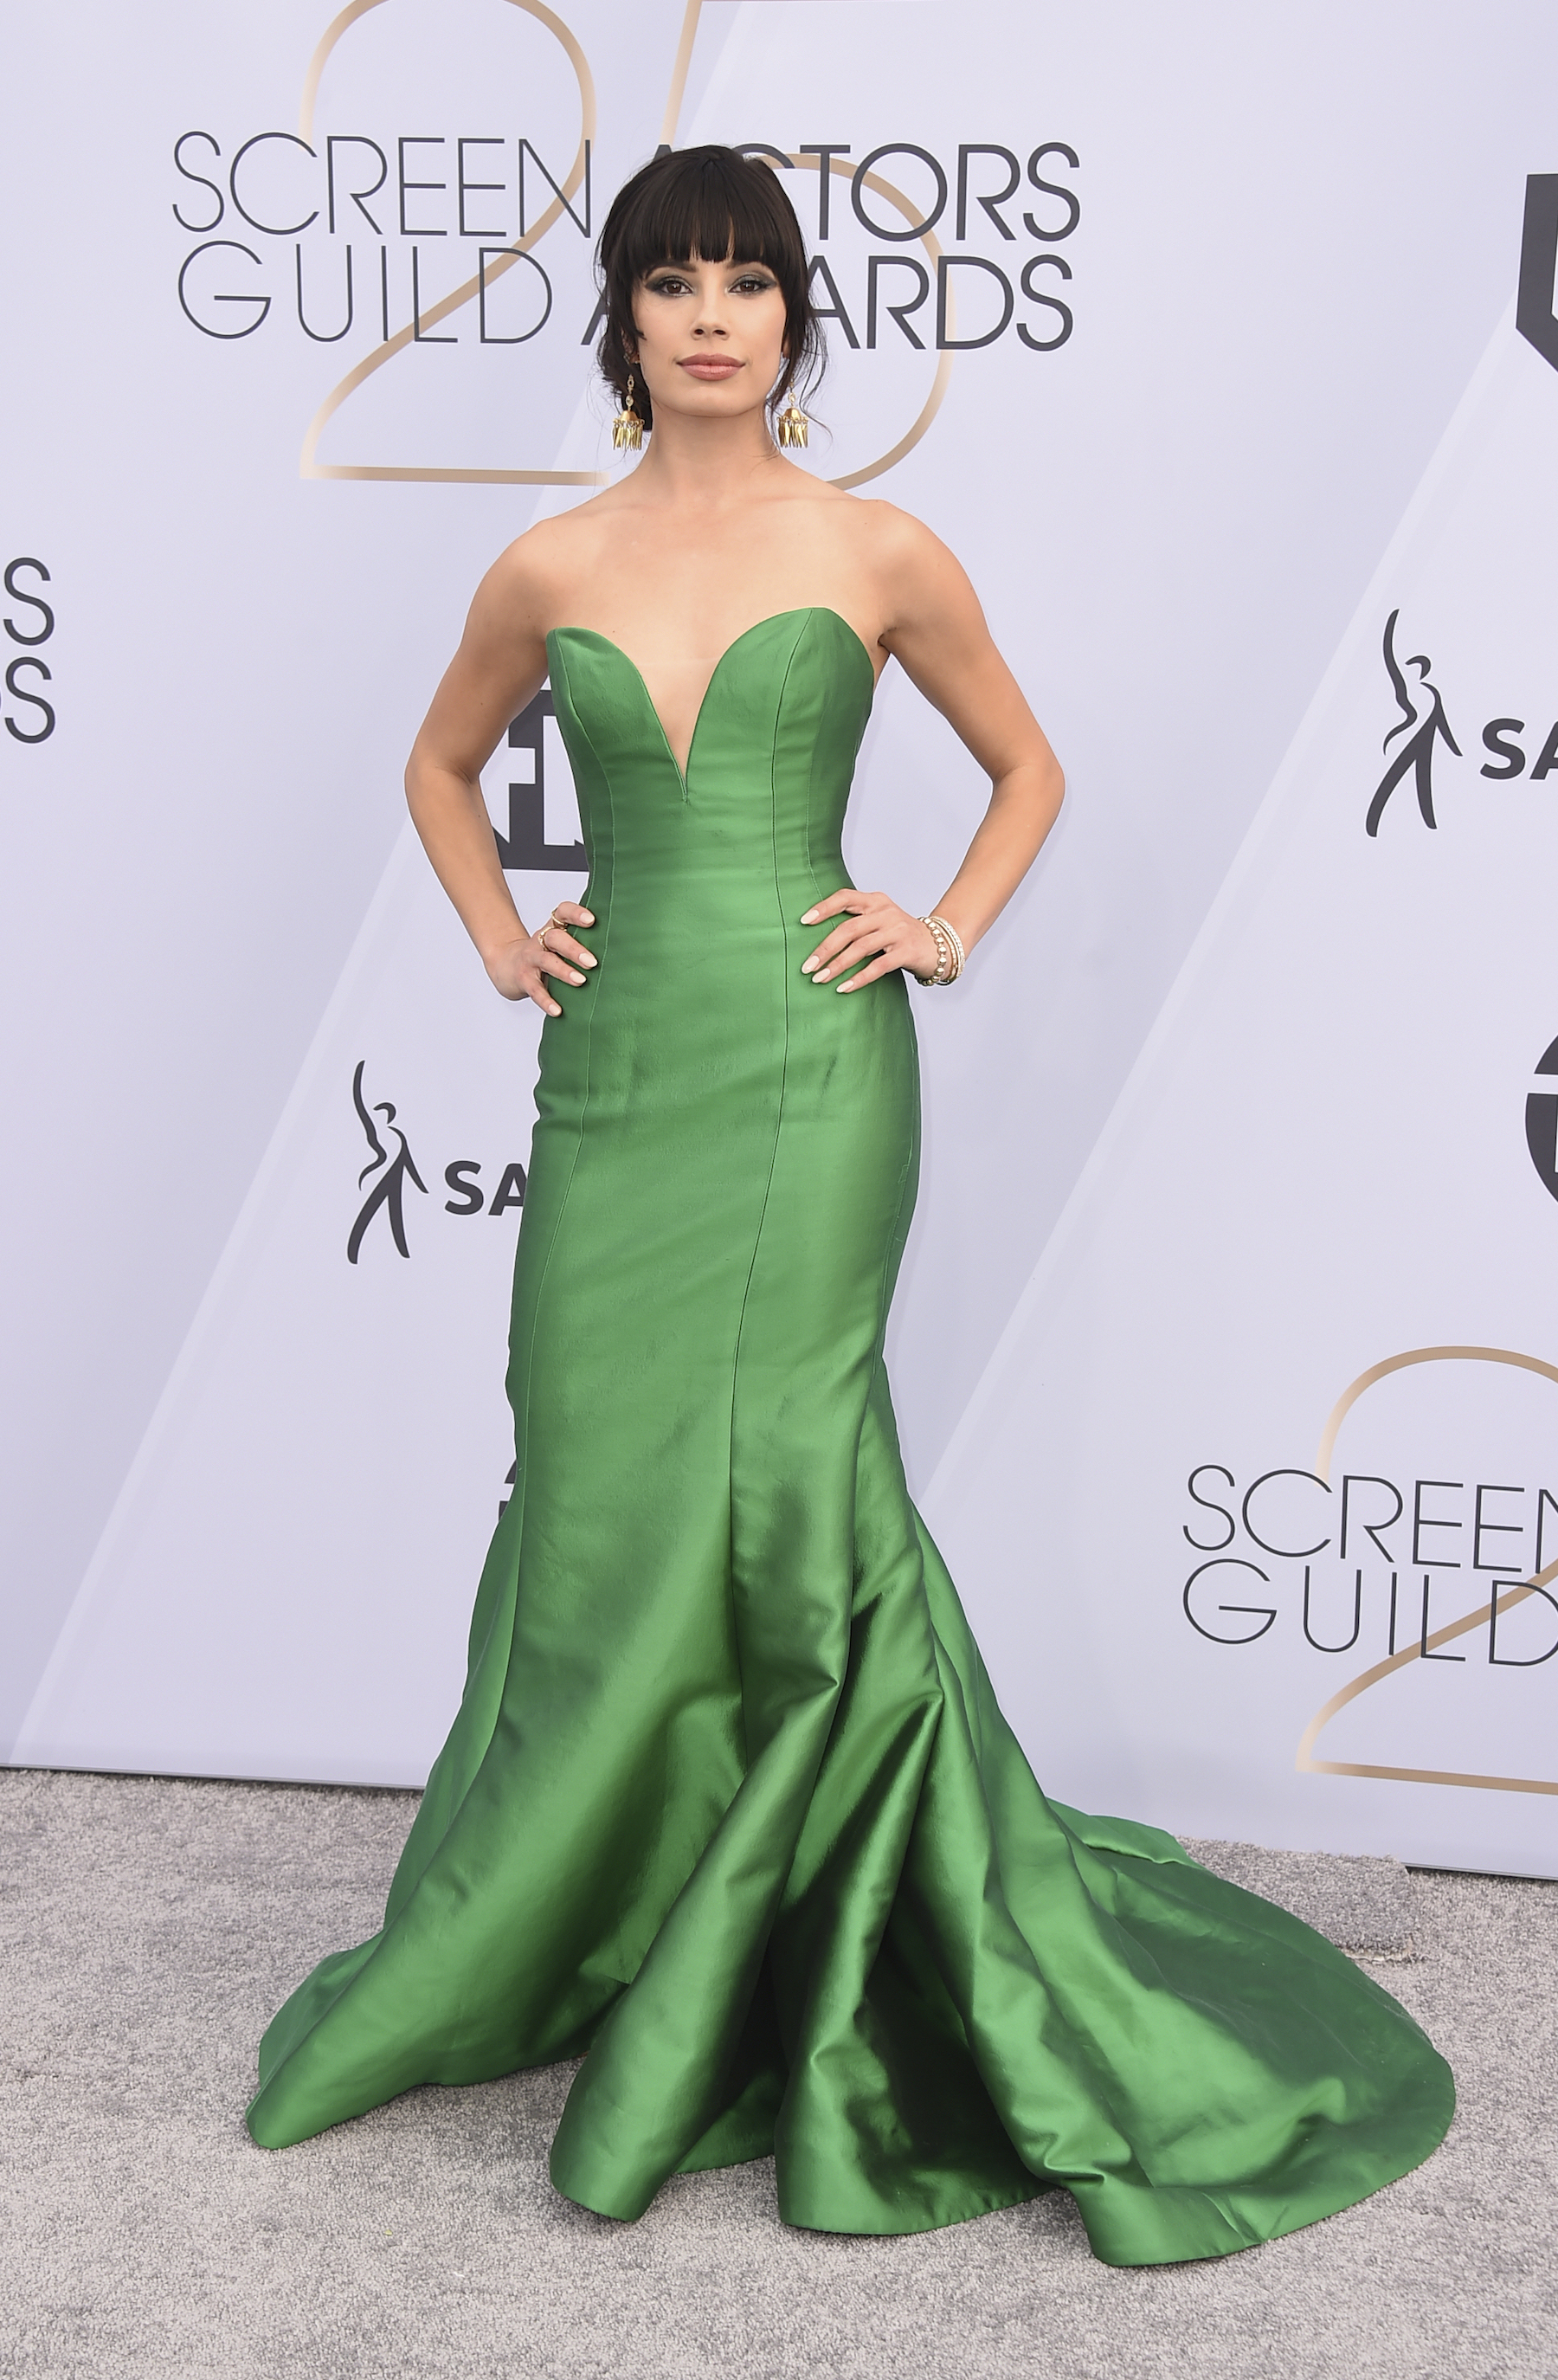 "<div class=""meta image-caption""><div class=""origin-logo origin-image ap""><span>AP</span></div><span class=""caption-text"">Jenna Lyng arrives at the 25th annual Screen Actors Guild Awards at the Shrine Auditorium & Expo Hall on Sunday, Jan. 27, 2019, in Los Angeles. (Jordan Strauss/Invision/AP)</span></div>"